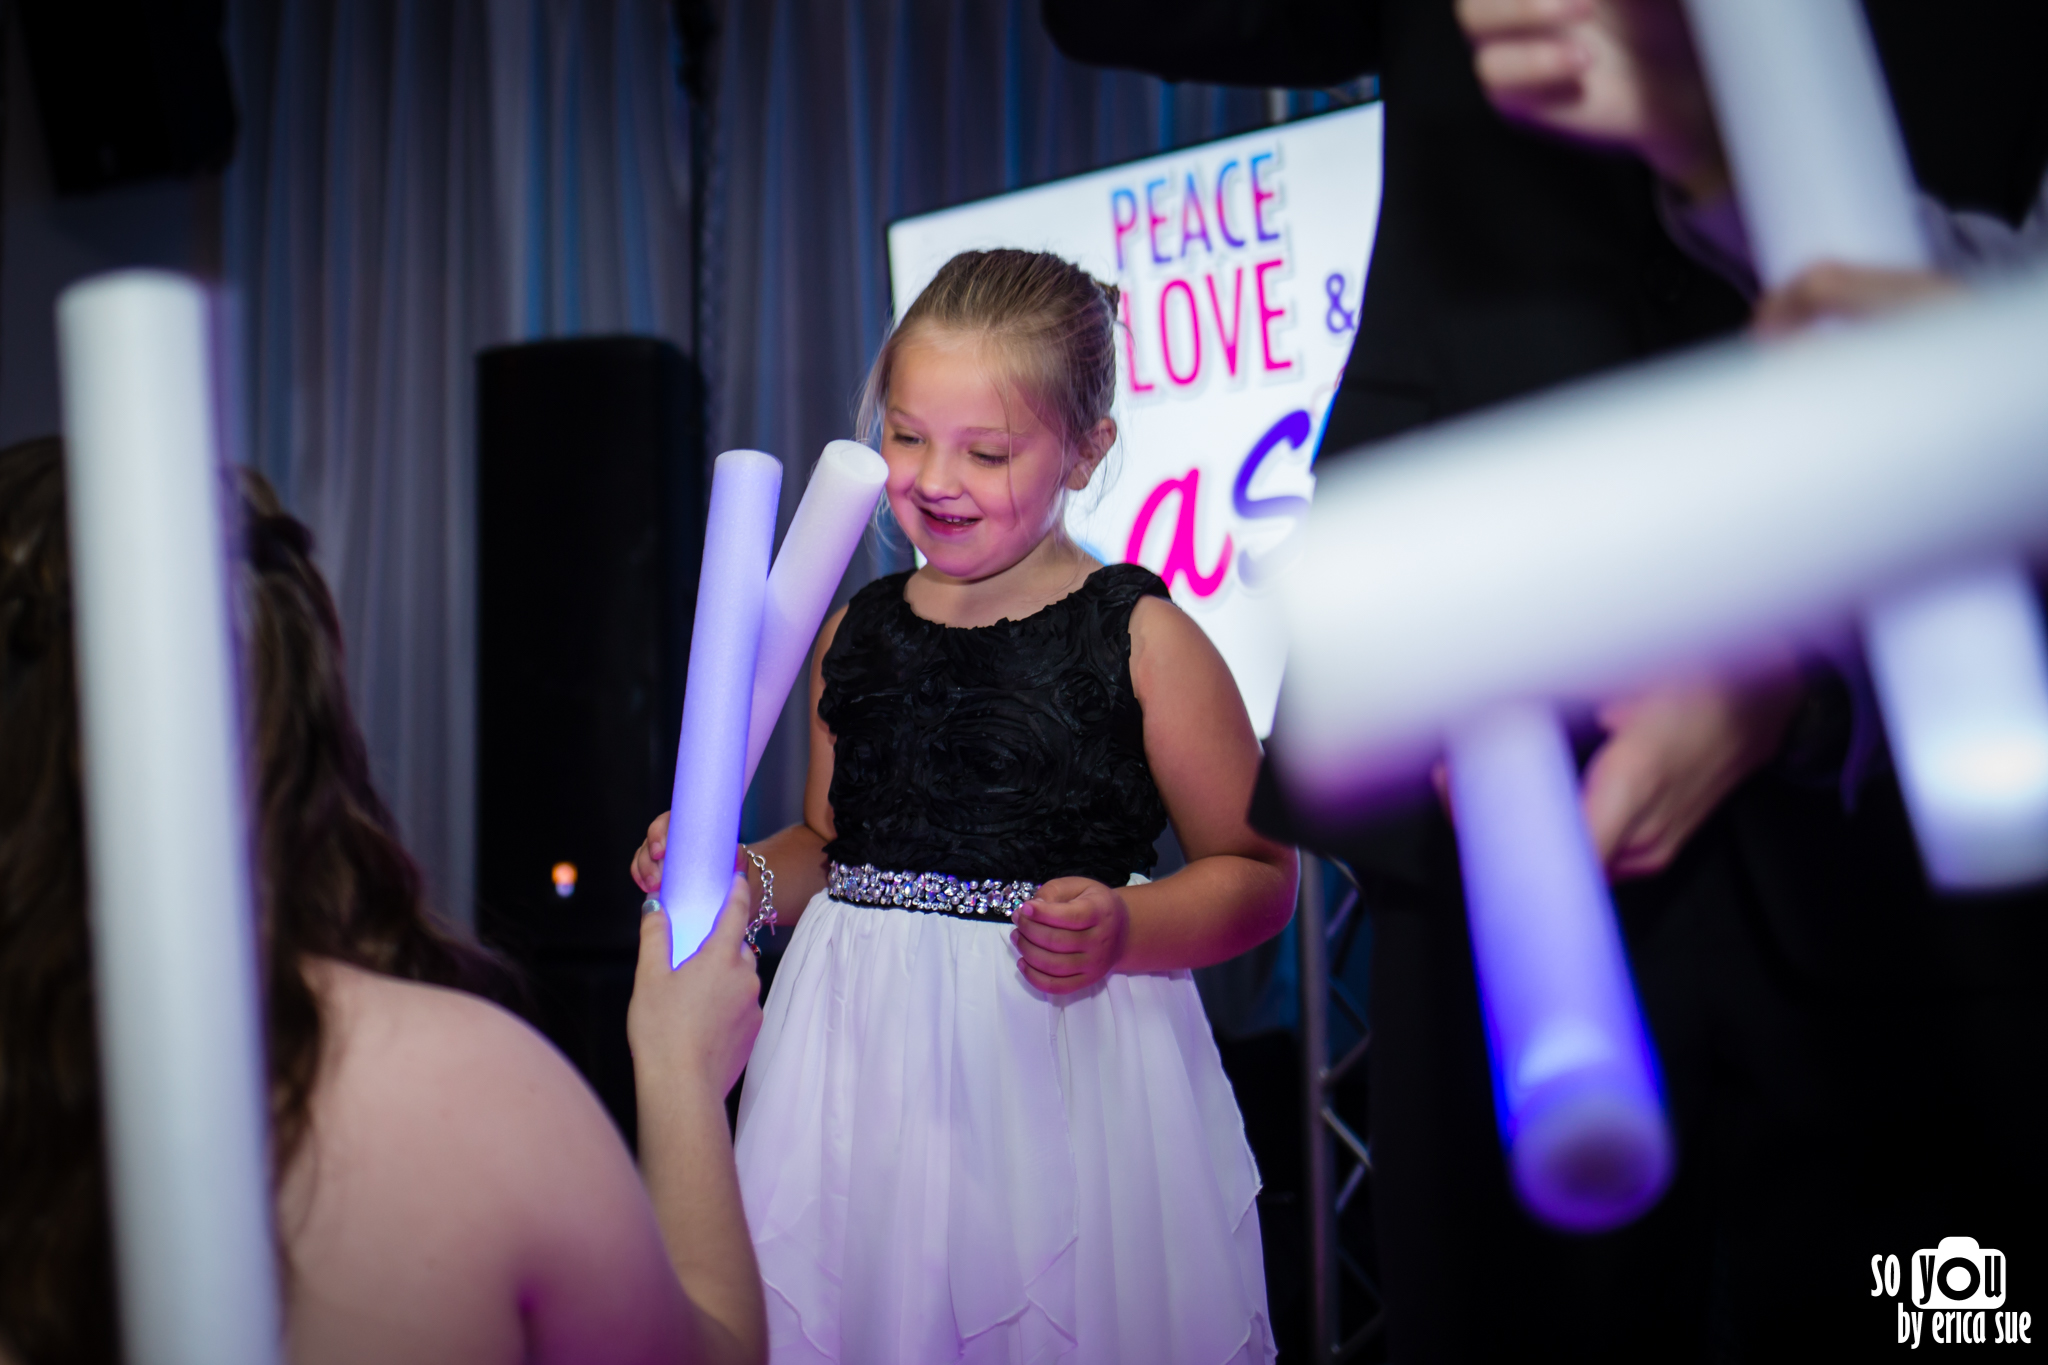 bat-mitzvah-photography-south-florida-broward-kol-ami-plantation-so-you-by-erica-sue-1616.jpg